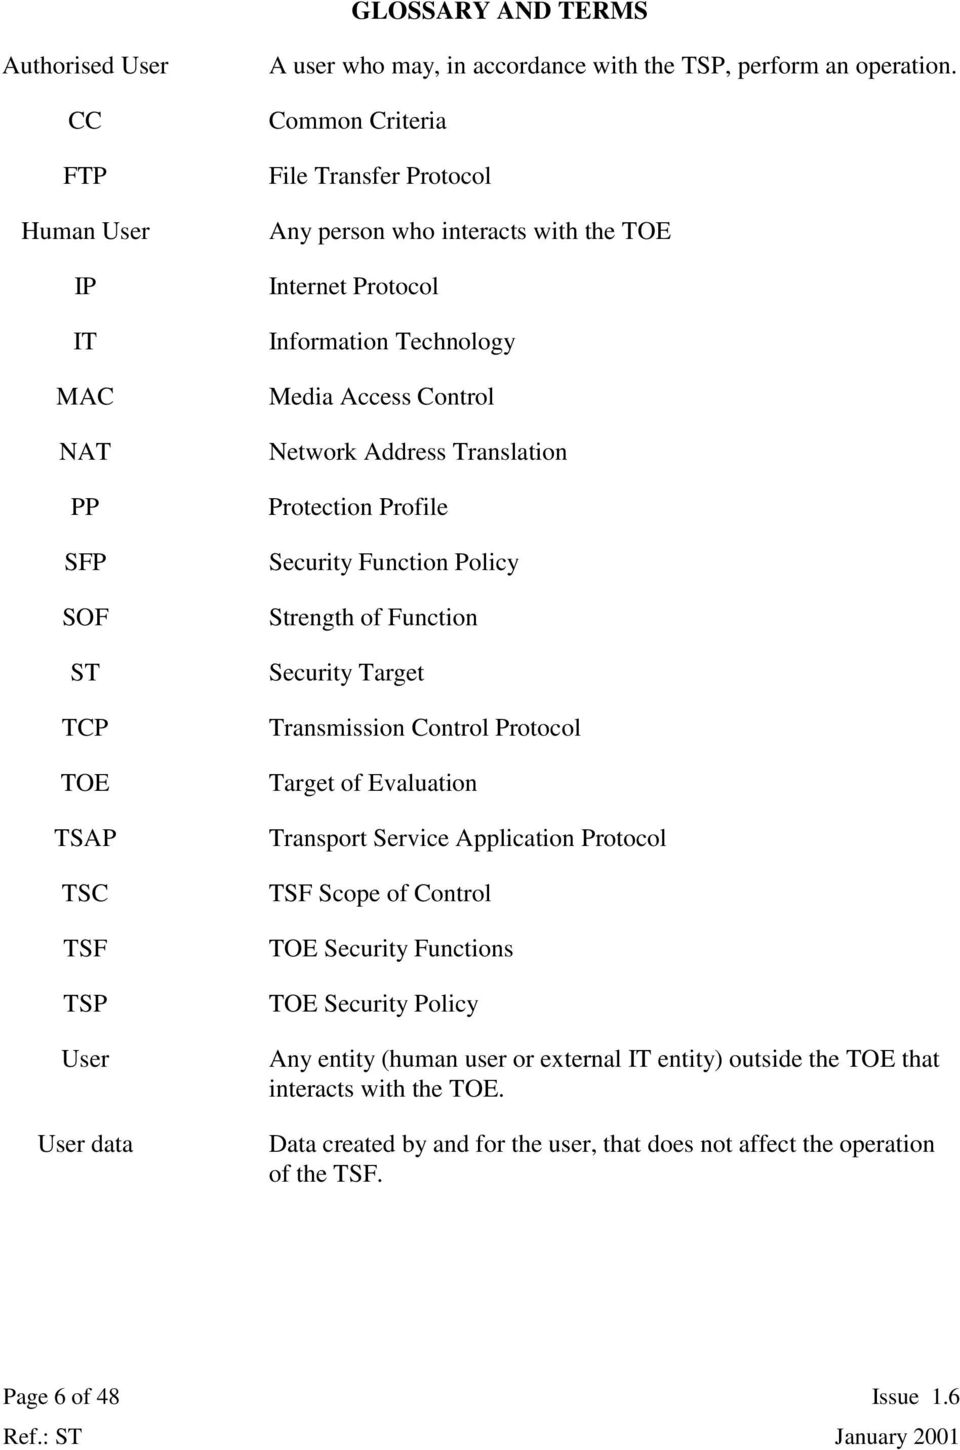 Function Policy Strength of Function Security Target Transmission Control Protocol Target of Evaluation Transport Service Application Protocol TSF Scope of Control TOE Security Functions TOE Security